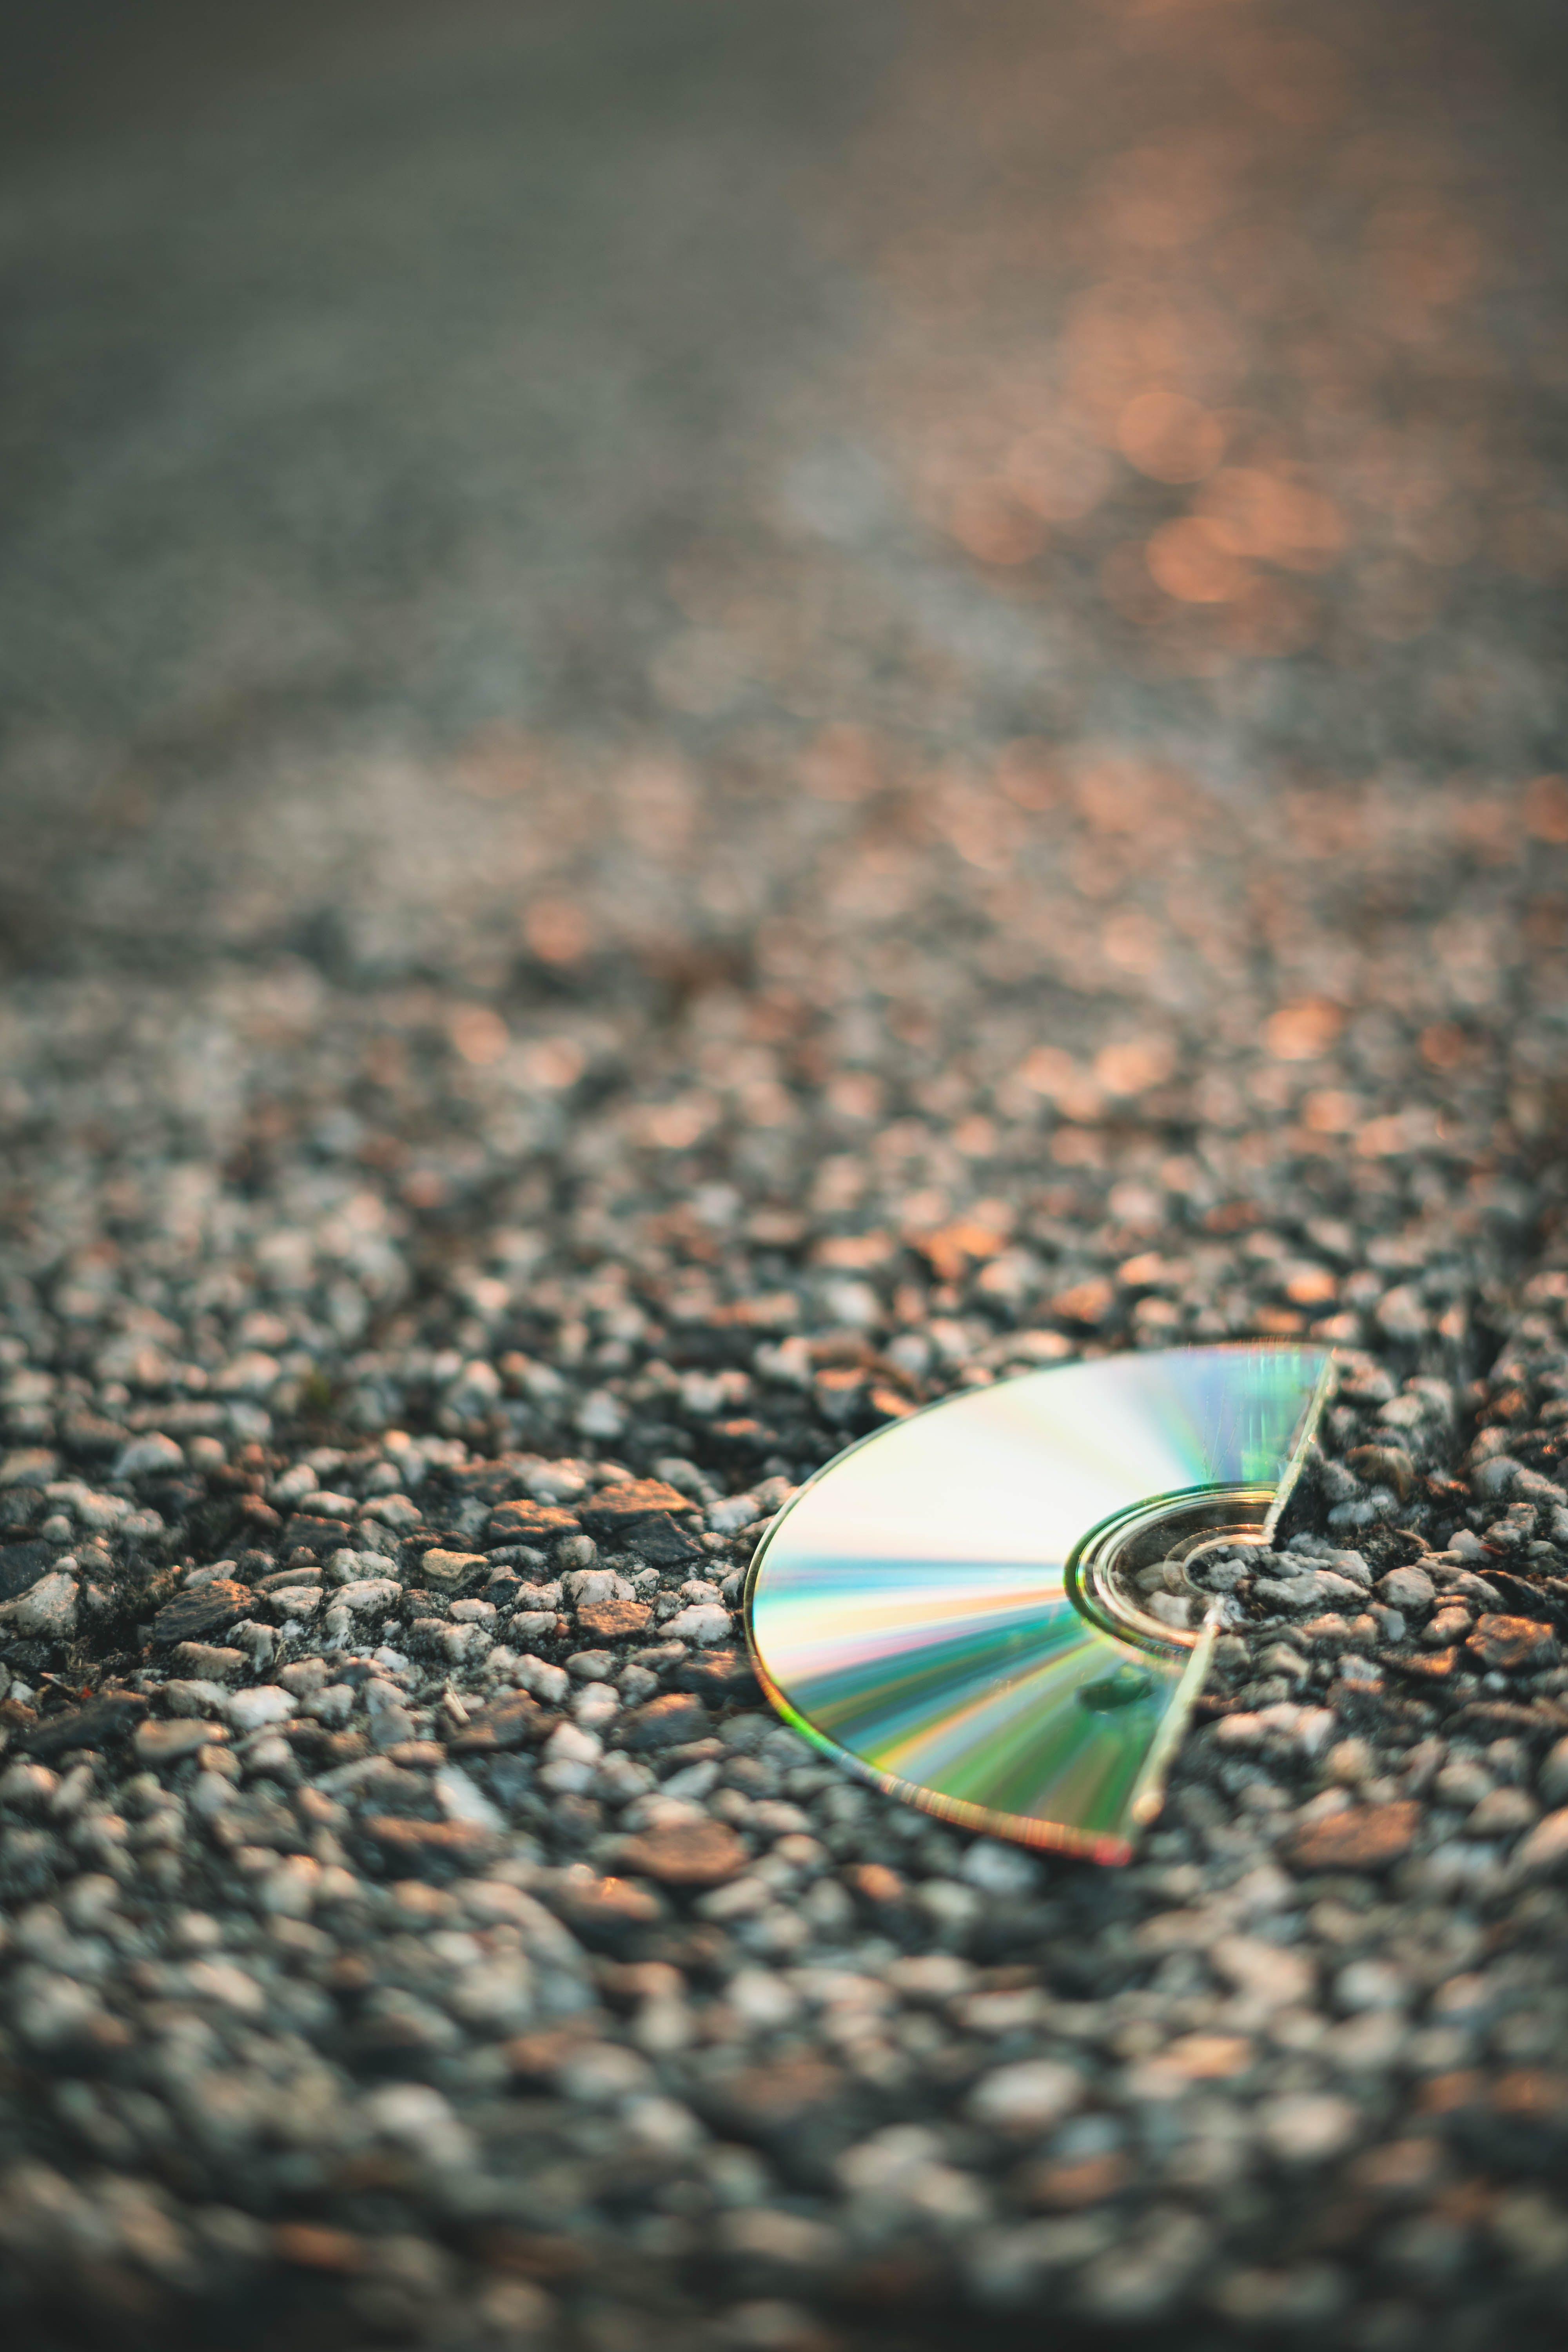 Selective Focus Photography of Half Cut Compact Disc on Gray Pavement